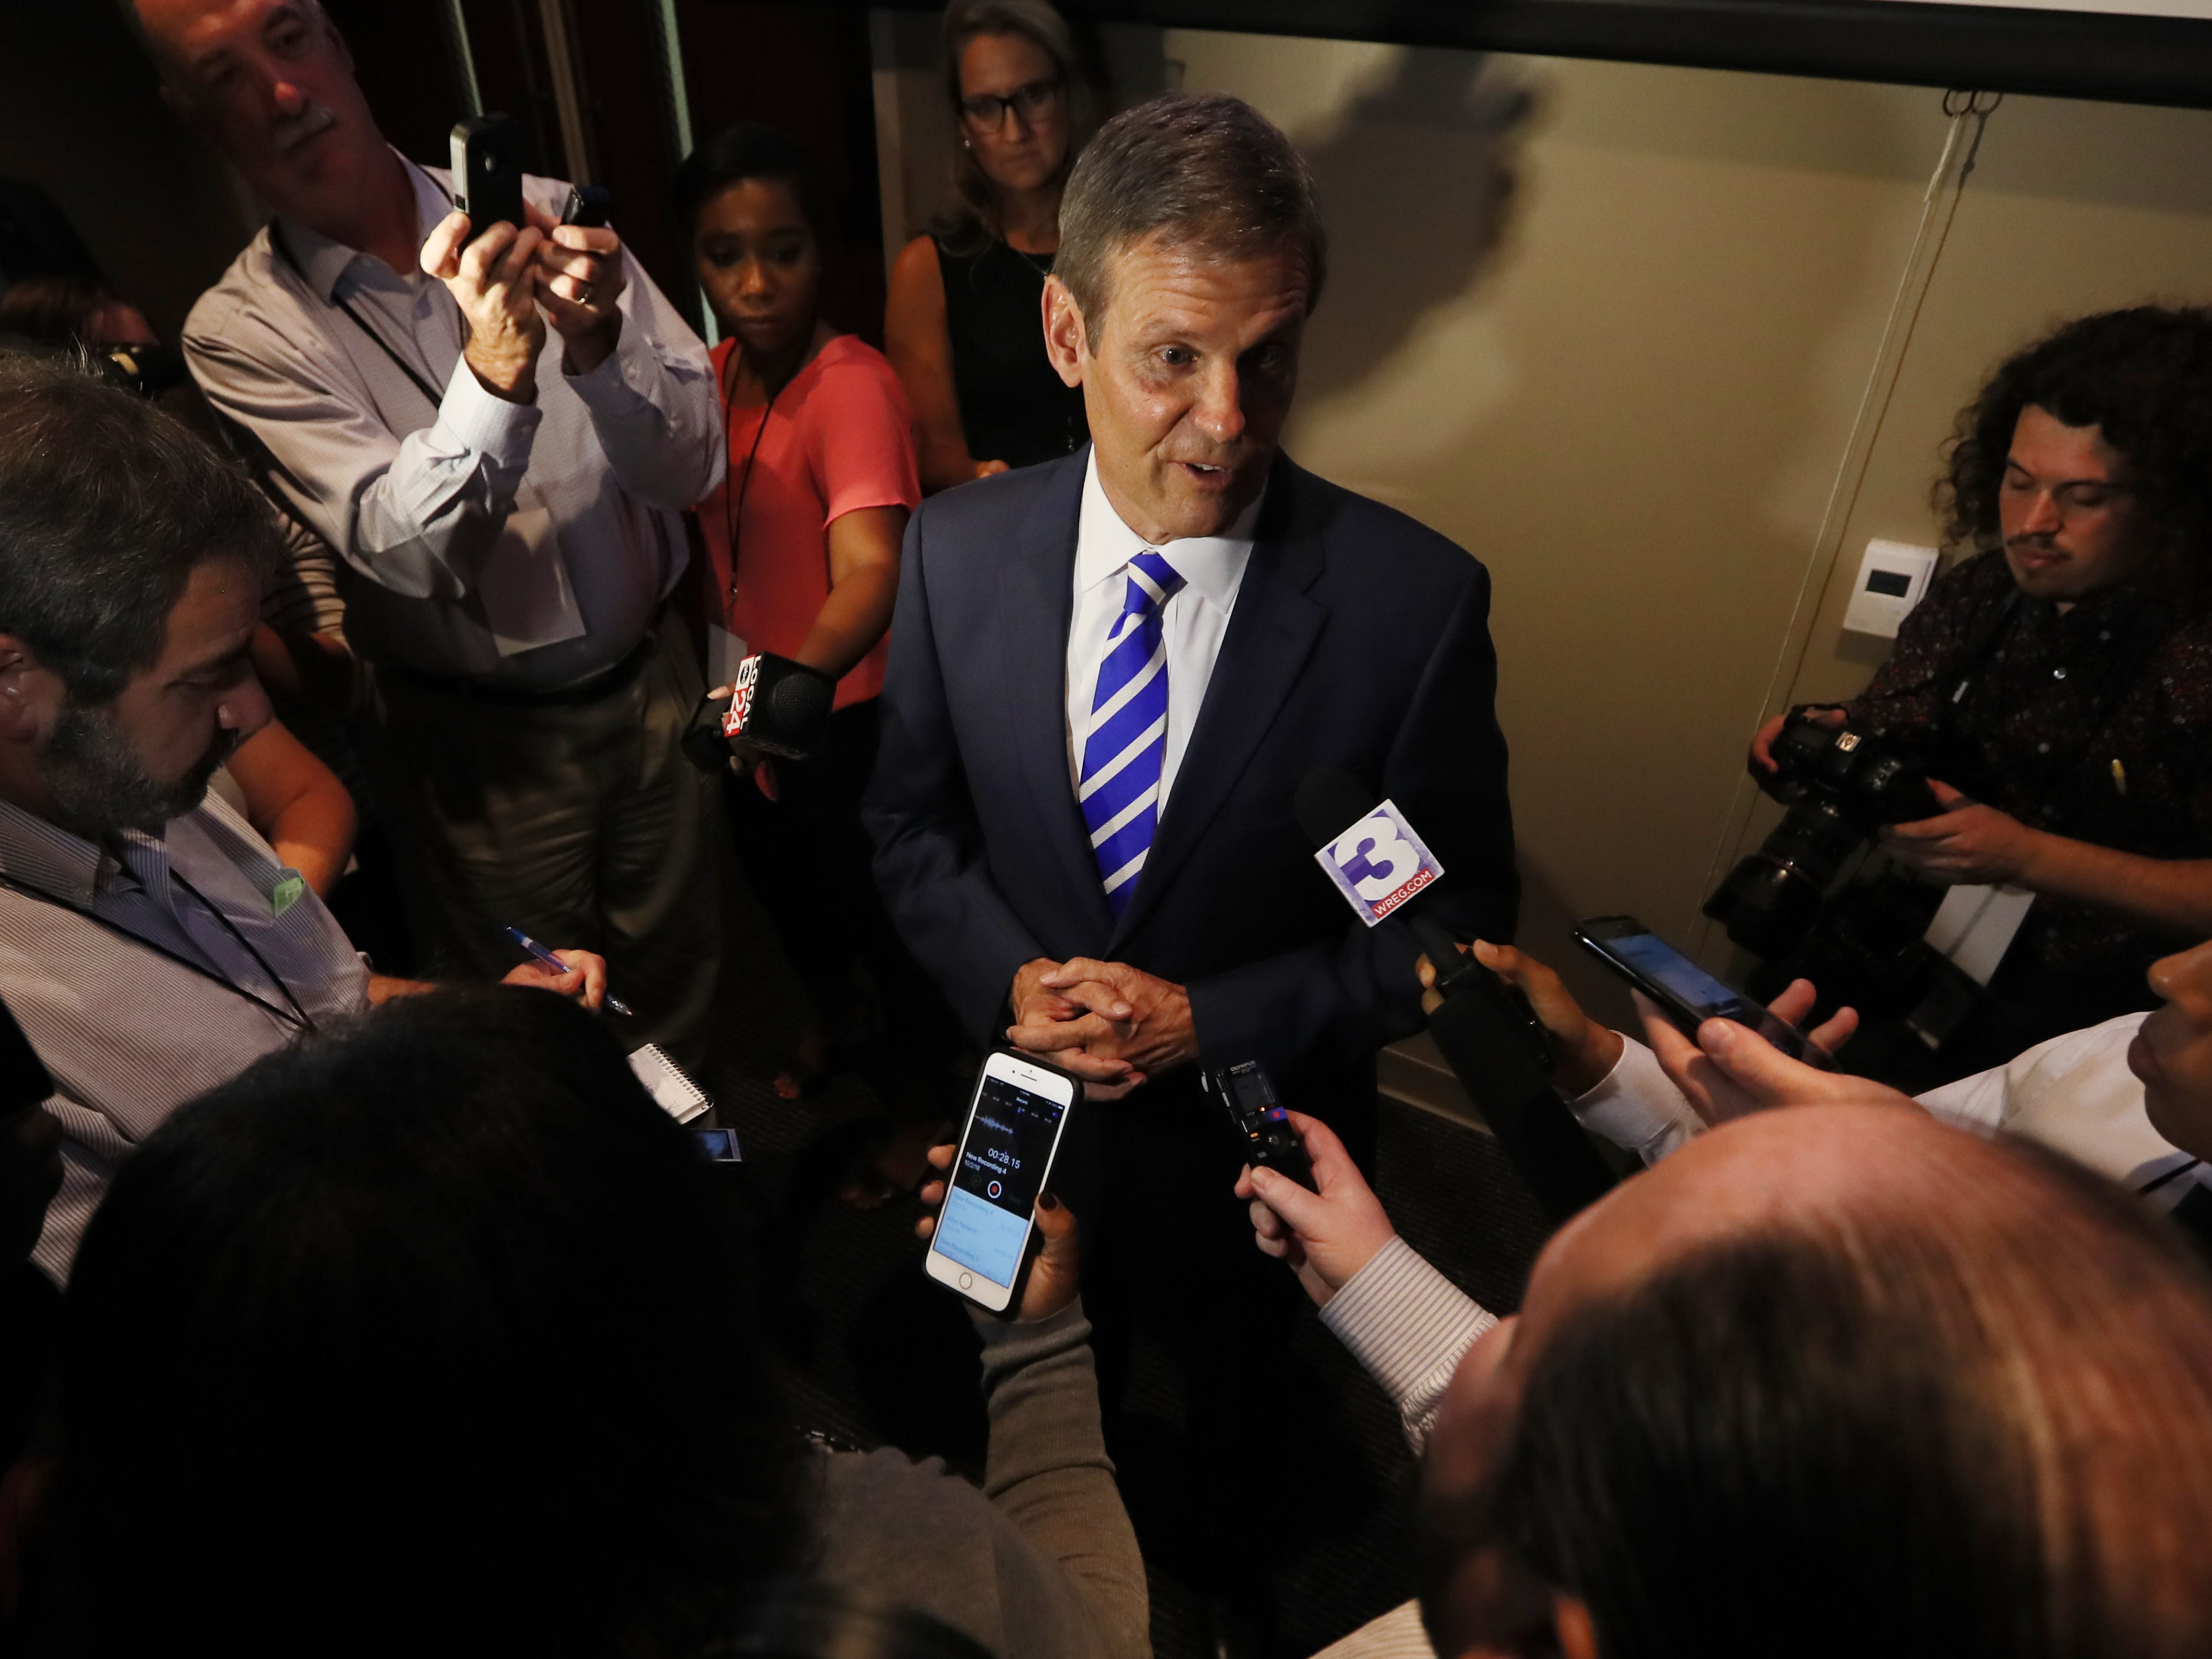 Republican Bill Lee speaks to the media following the gubernatorial debate at the University of Memphis' Michael D. Rose Theater in Memphis, Tenn., on Tuesday, Oct. 2, 2018.